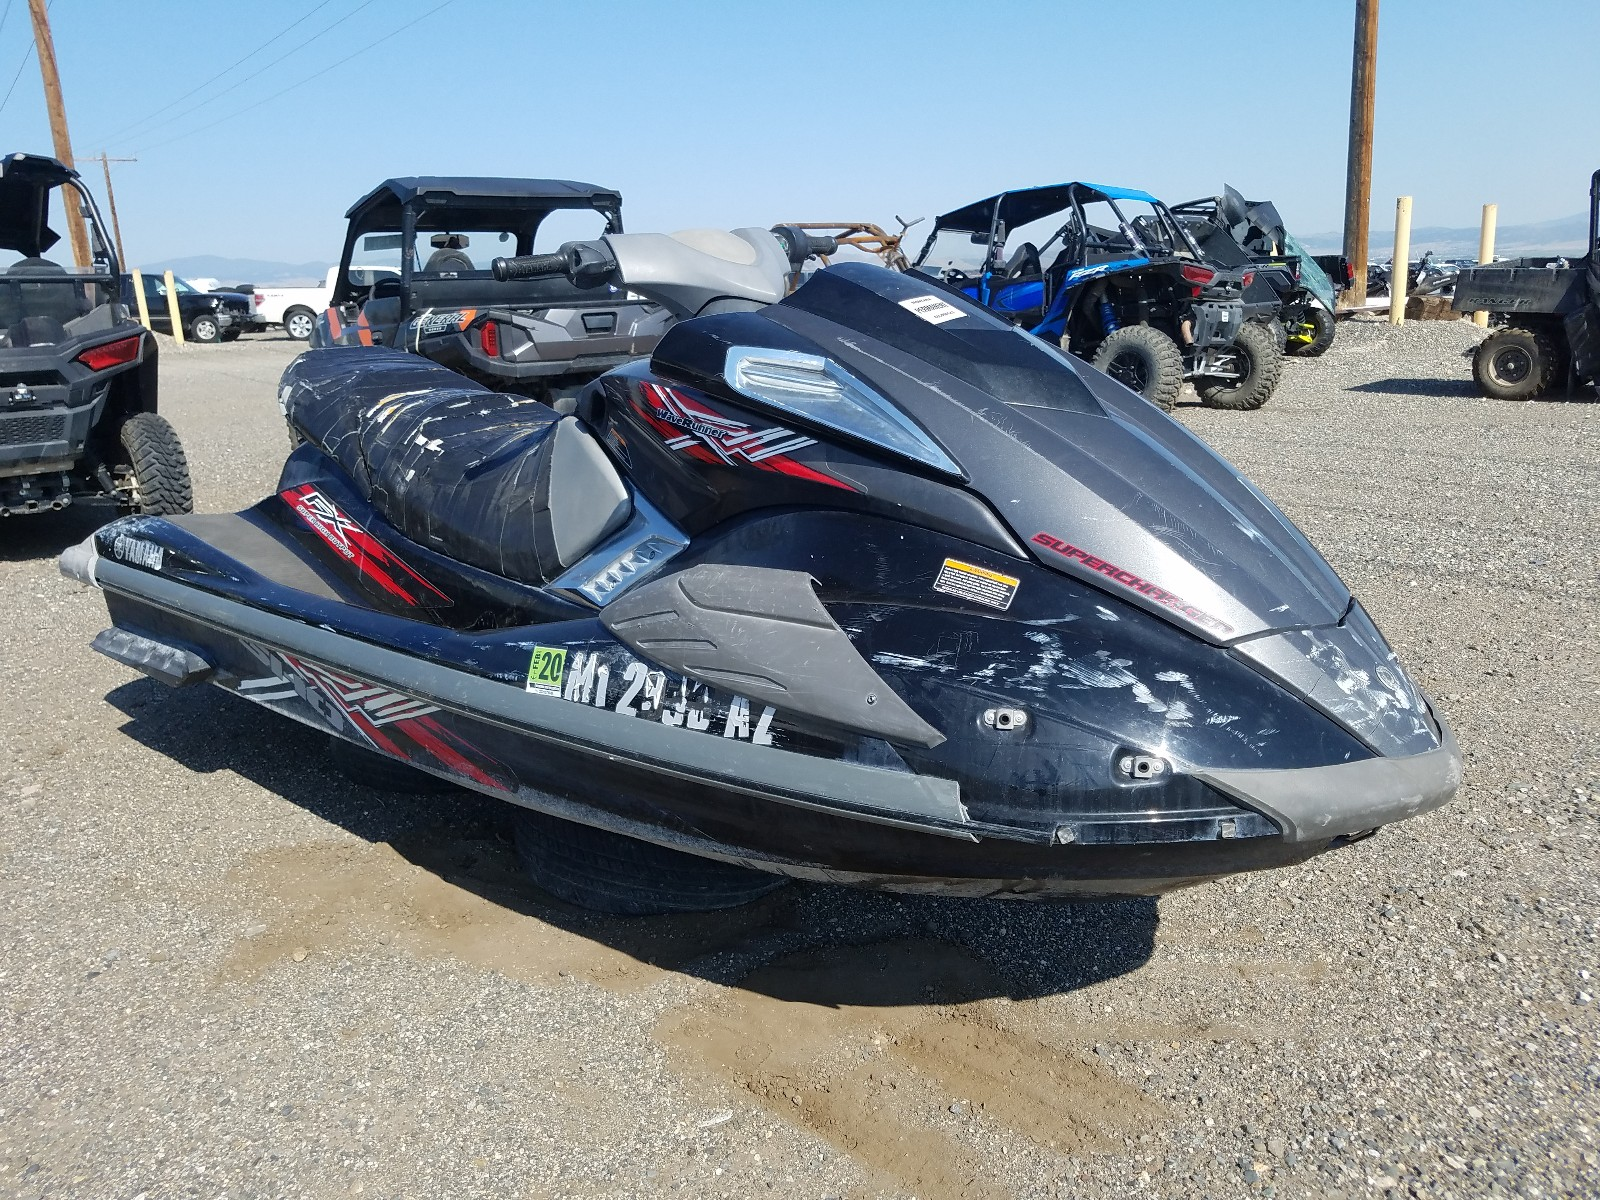 2008 Yamaha Jet Ski In Mt Helena Yama4529b808 For Sale Autobidmaster